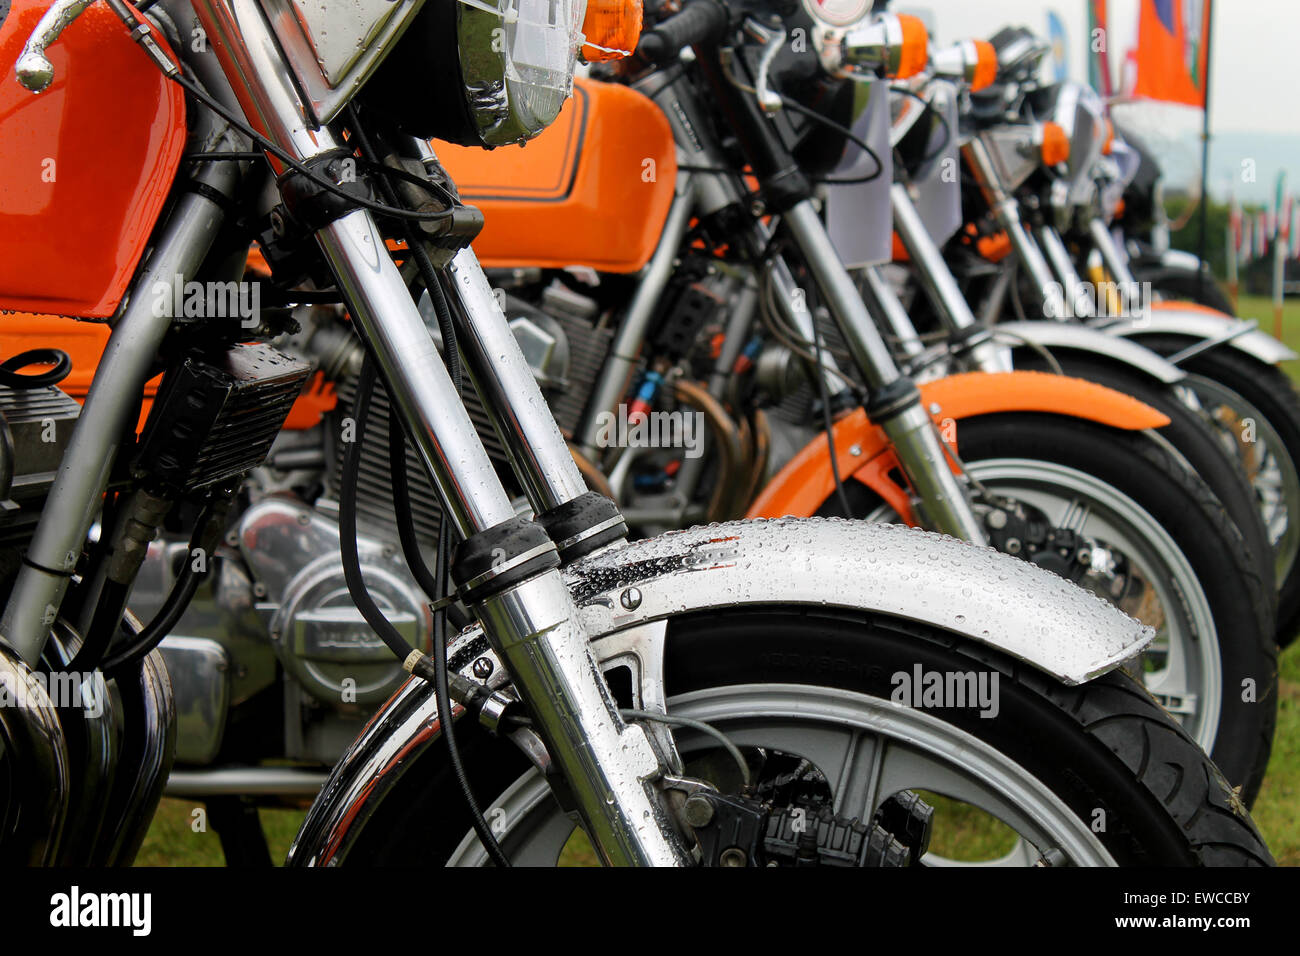 Row of motorbikes in a field - Stock Image